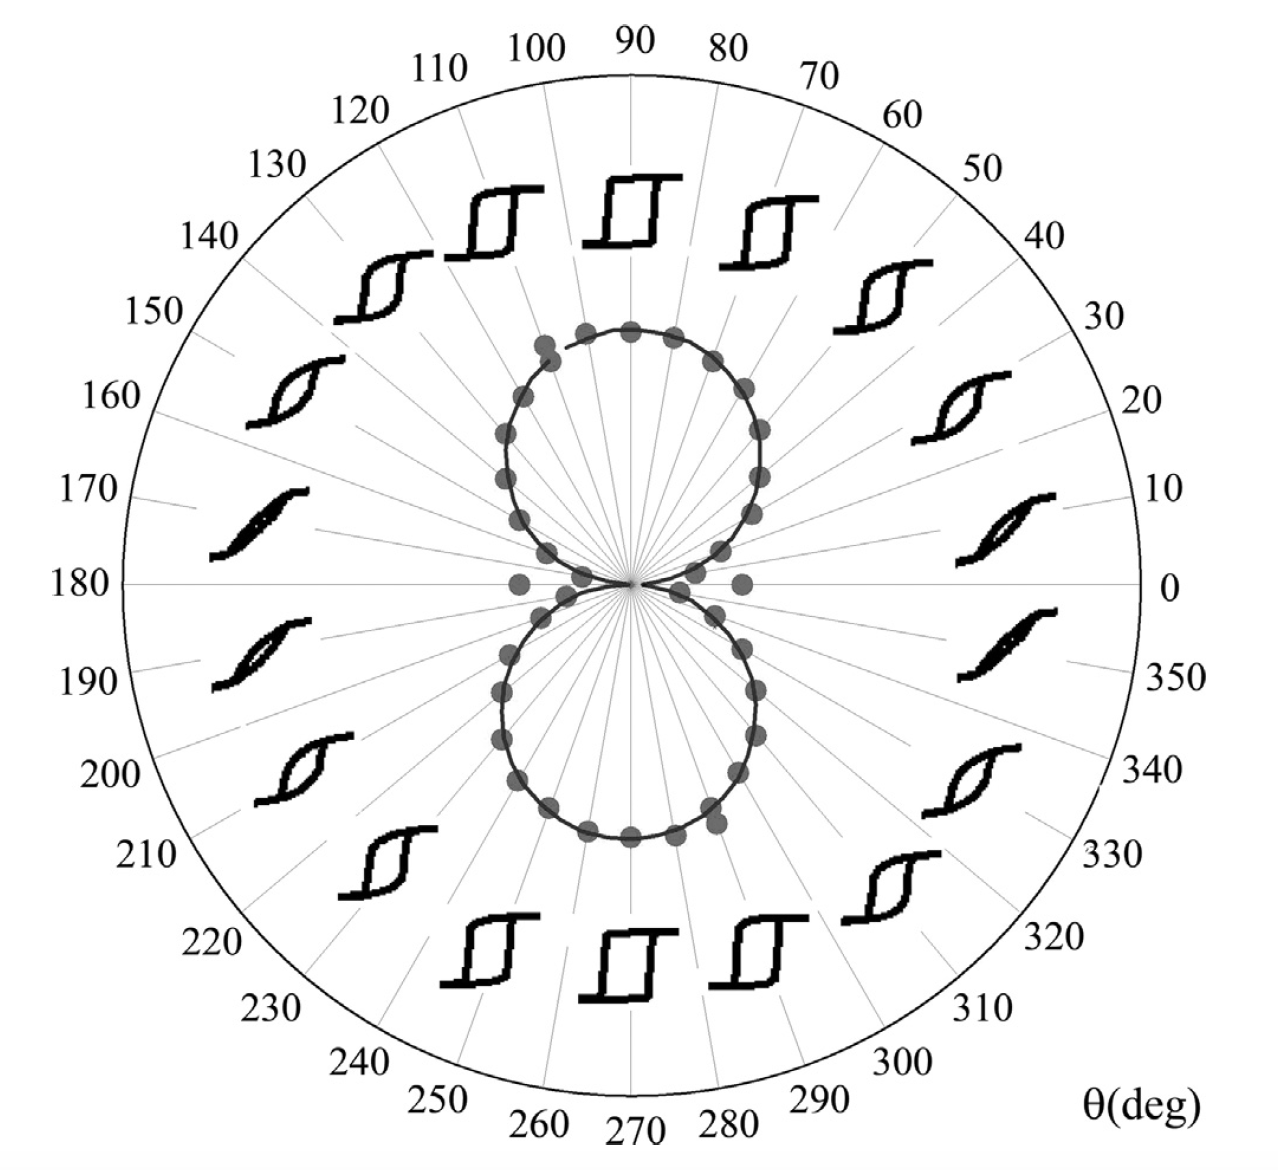 How to plot Multiple Hysteresis loops on polar grid in